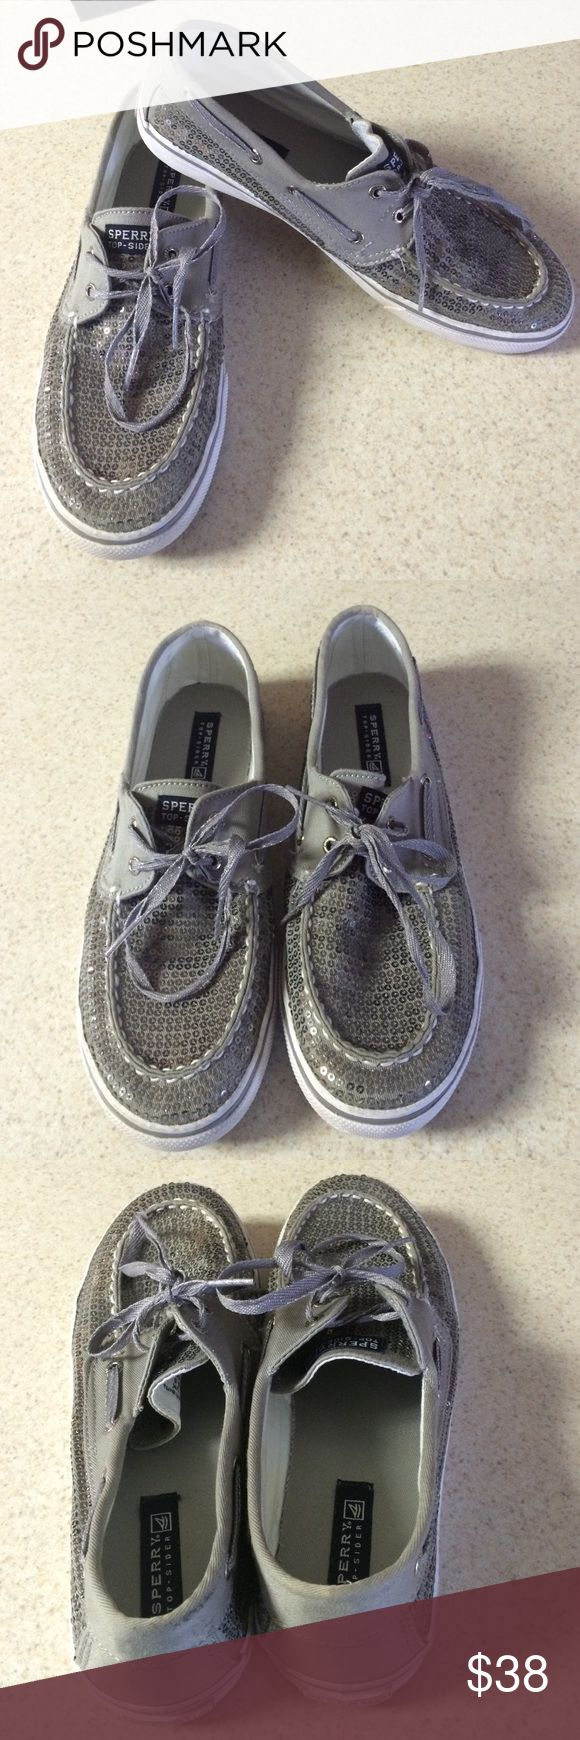 ⚡️weekend sale⚡️was $38 SPERRY top-sider sneakers Beautiful sequined SPERRY top-sider, worn once, great condition. Size 6M Sperry Top-Sider Shoes Sneakers